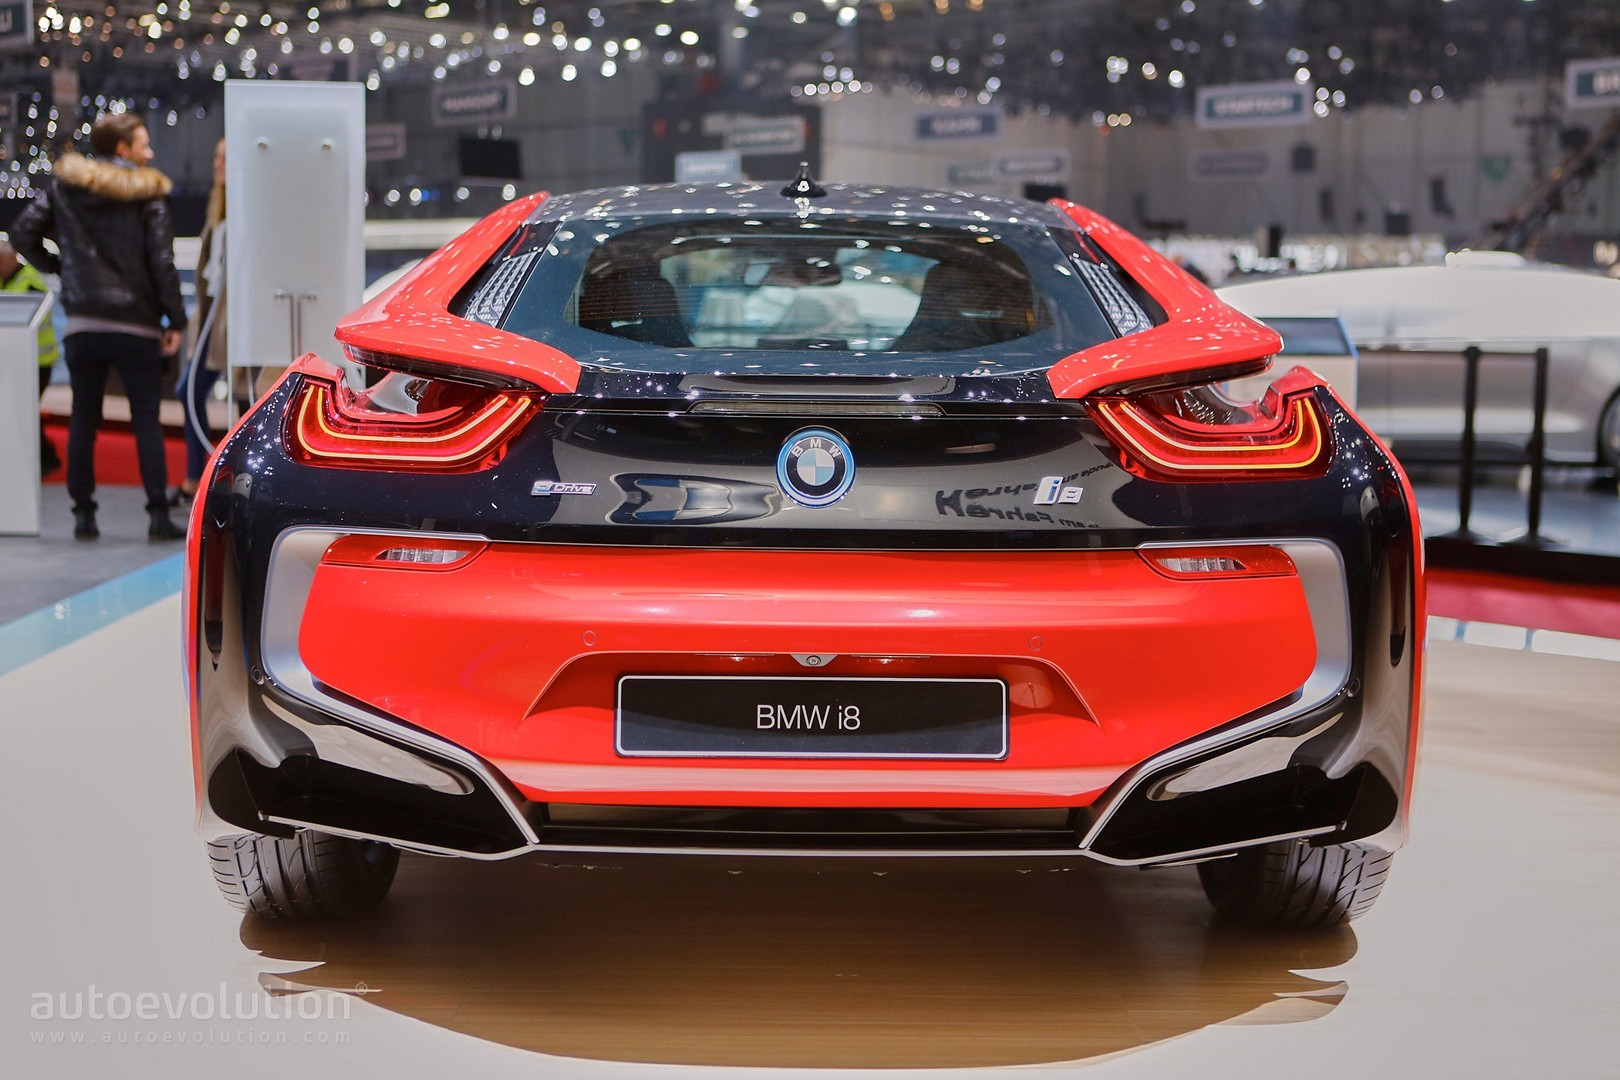 Bmw I8 Protonic Red Edition Is The Beginning Of Something Hot In